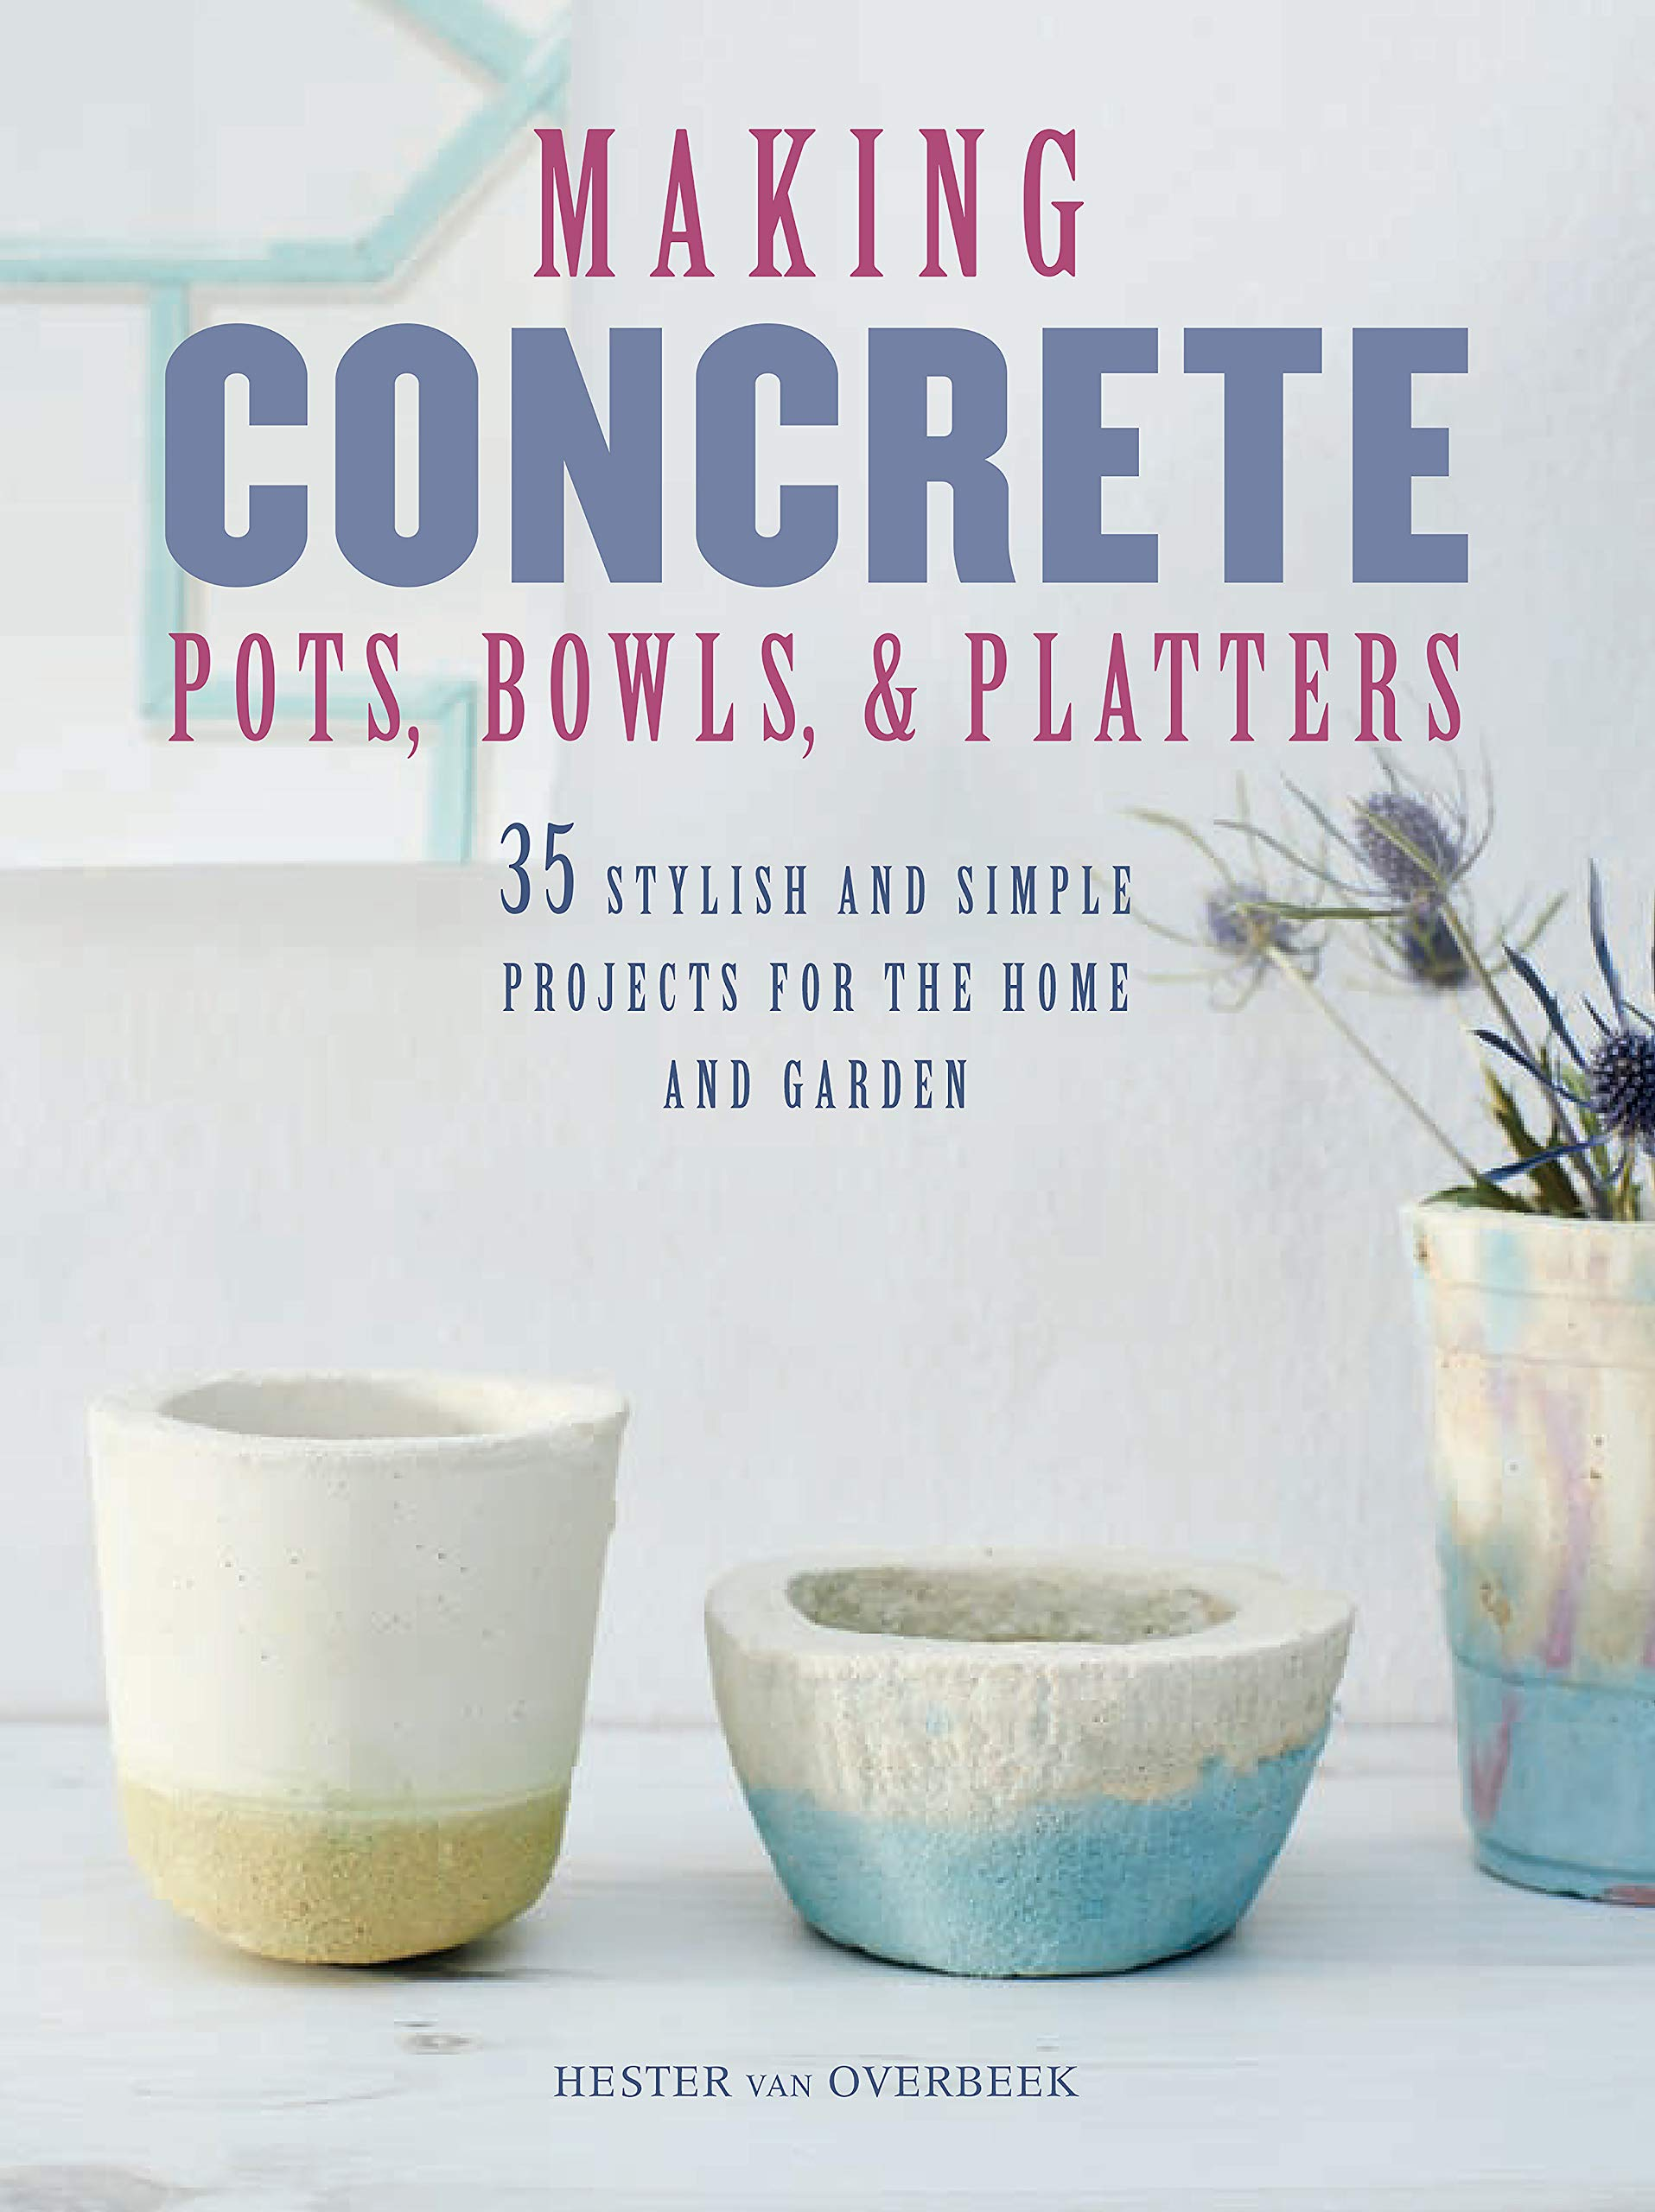 Making Concrete Pots Bowls And Platters 35 Stylish And Simple Projects For The Home And Garden Van Overbeek Hester 9781782494140 Books